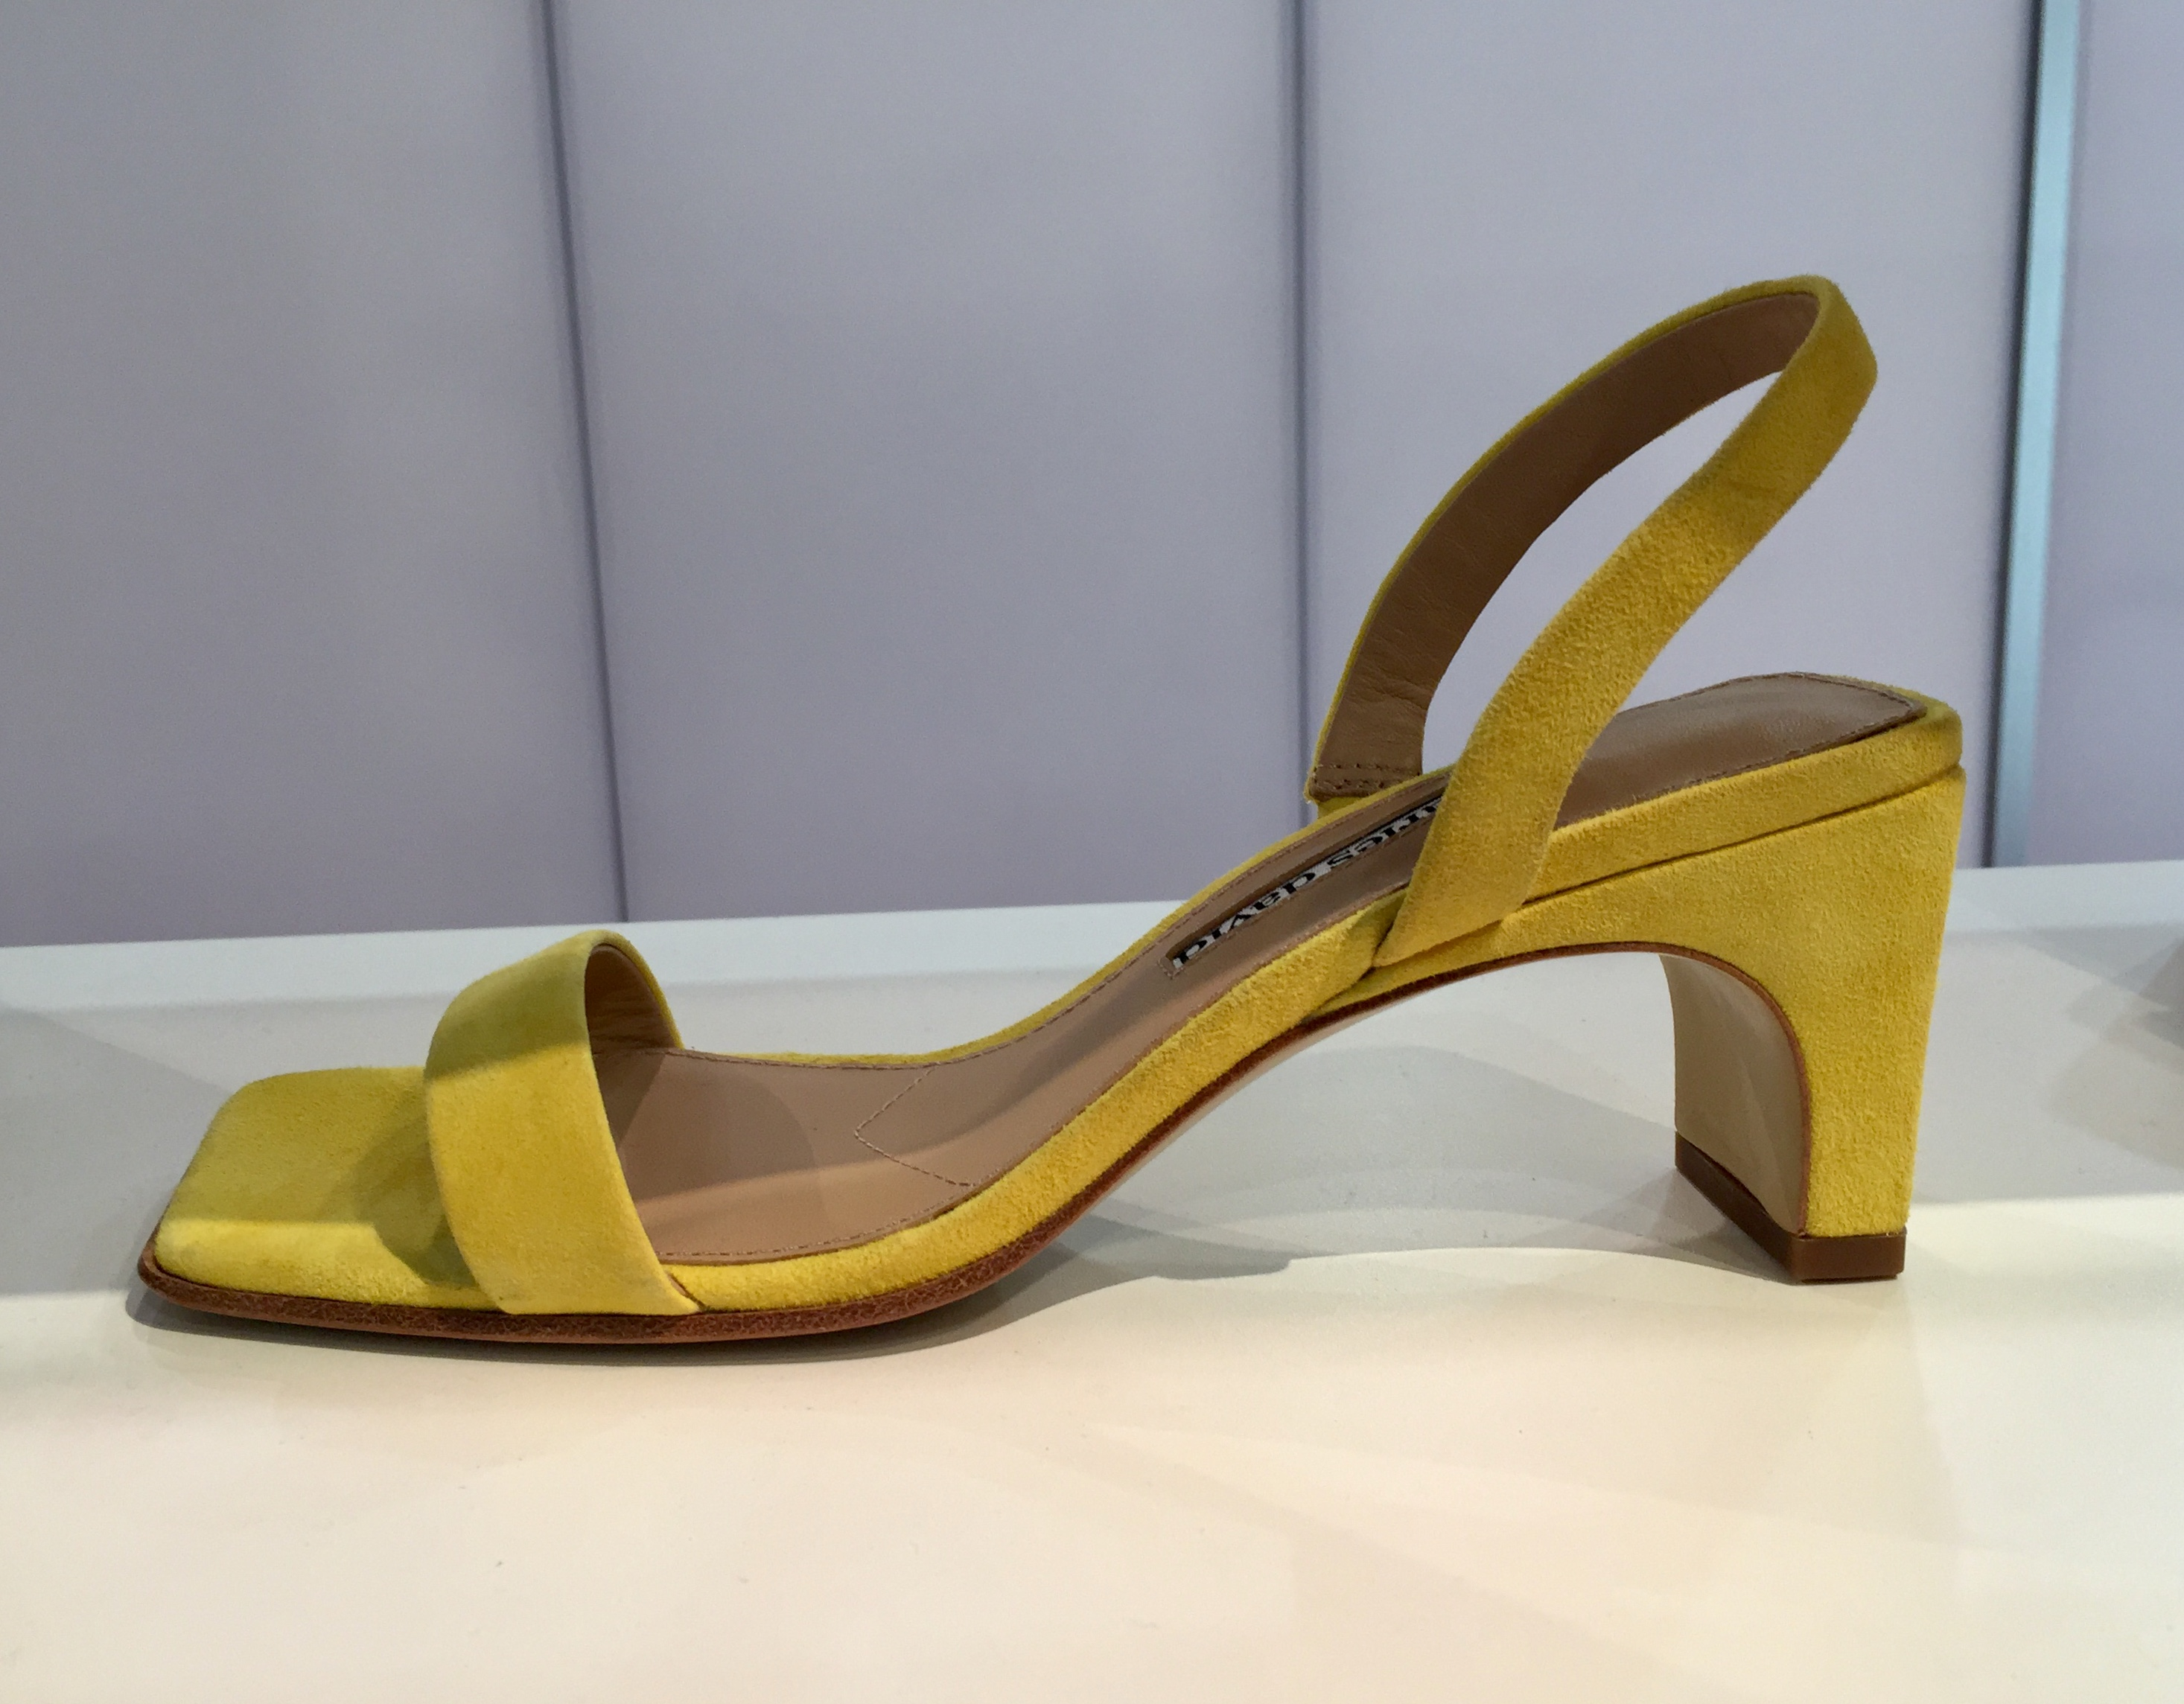 A suede slingback sandal in chartreuse from Charles David.